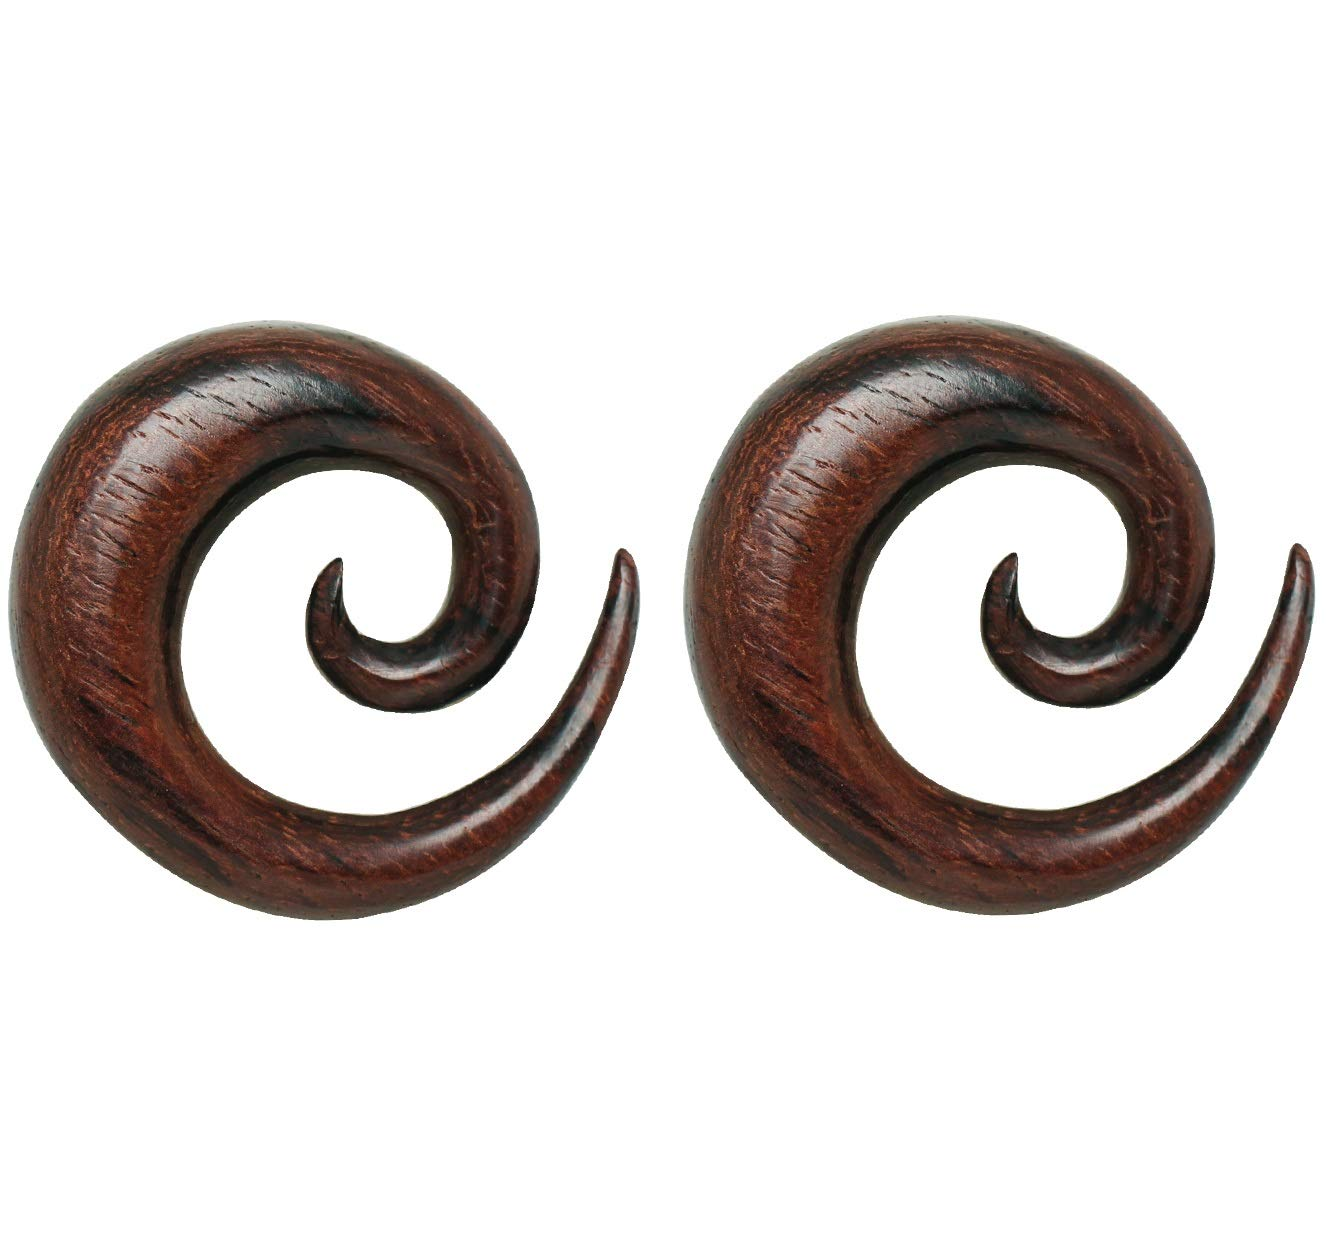 Pierced Owl Organic Dark Brown Sono Wood Spiral Taper Plugs, Sold as a Pair (4mm (6GA)) by Pierced Owl